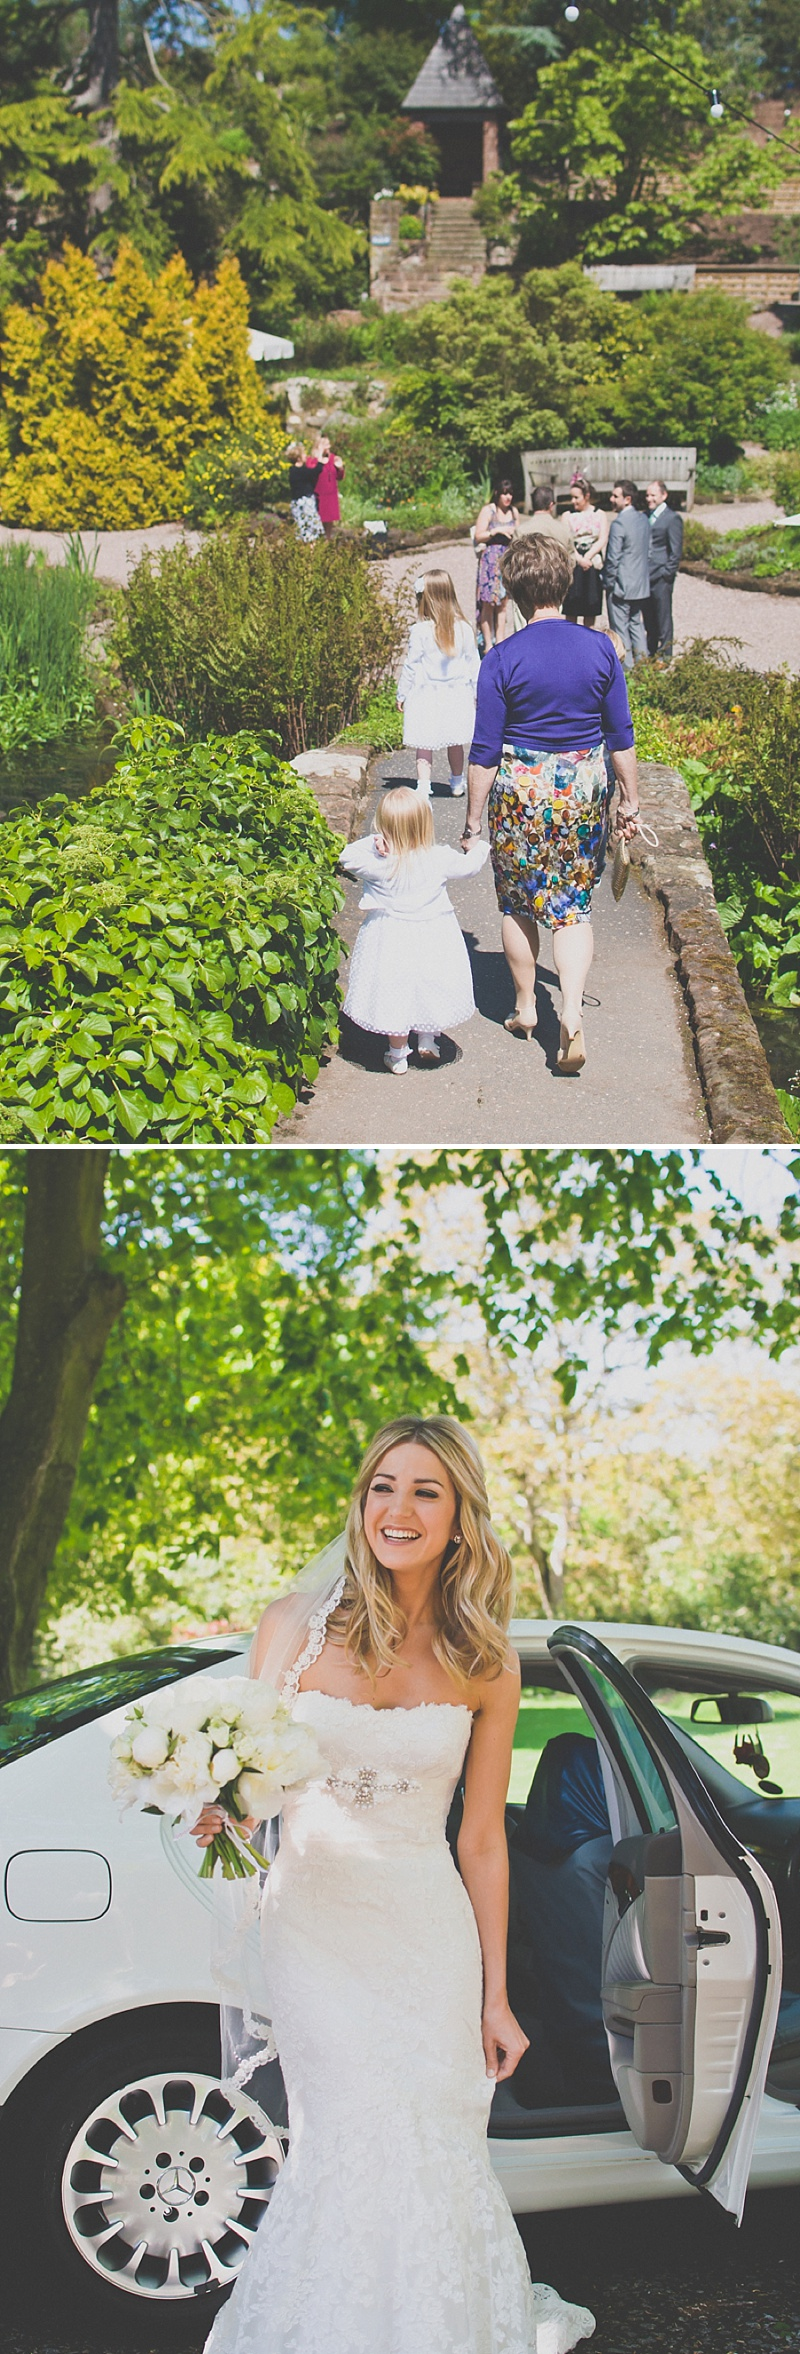 An Elegant White Themed Wedding At The Ness Botanic Gardens With Bride In Champagne From Blue By Enzoani With Aldo Corinne Shoes Images By Rivington Photography 0018 If You Could Bottle That Feeling.